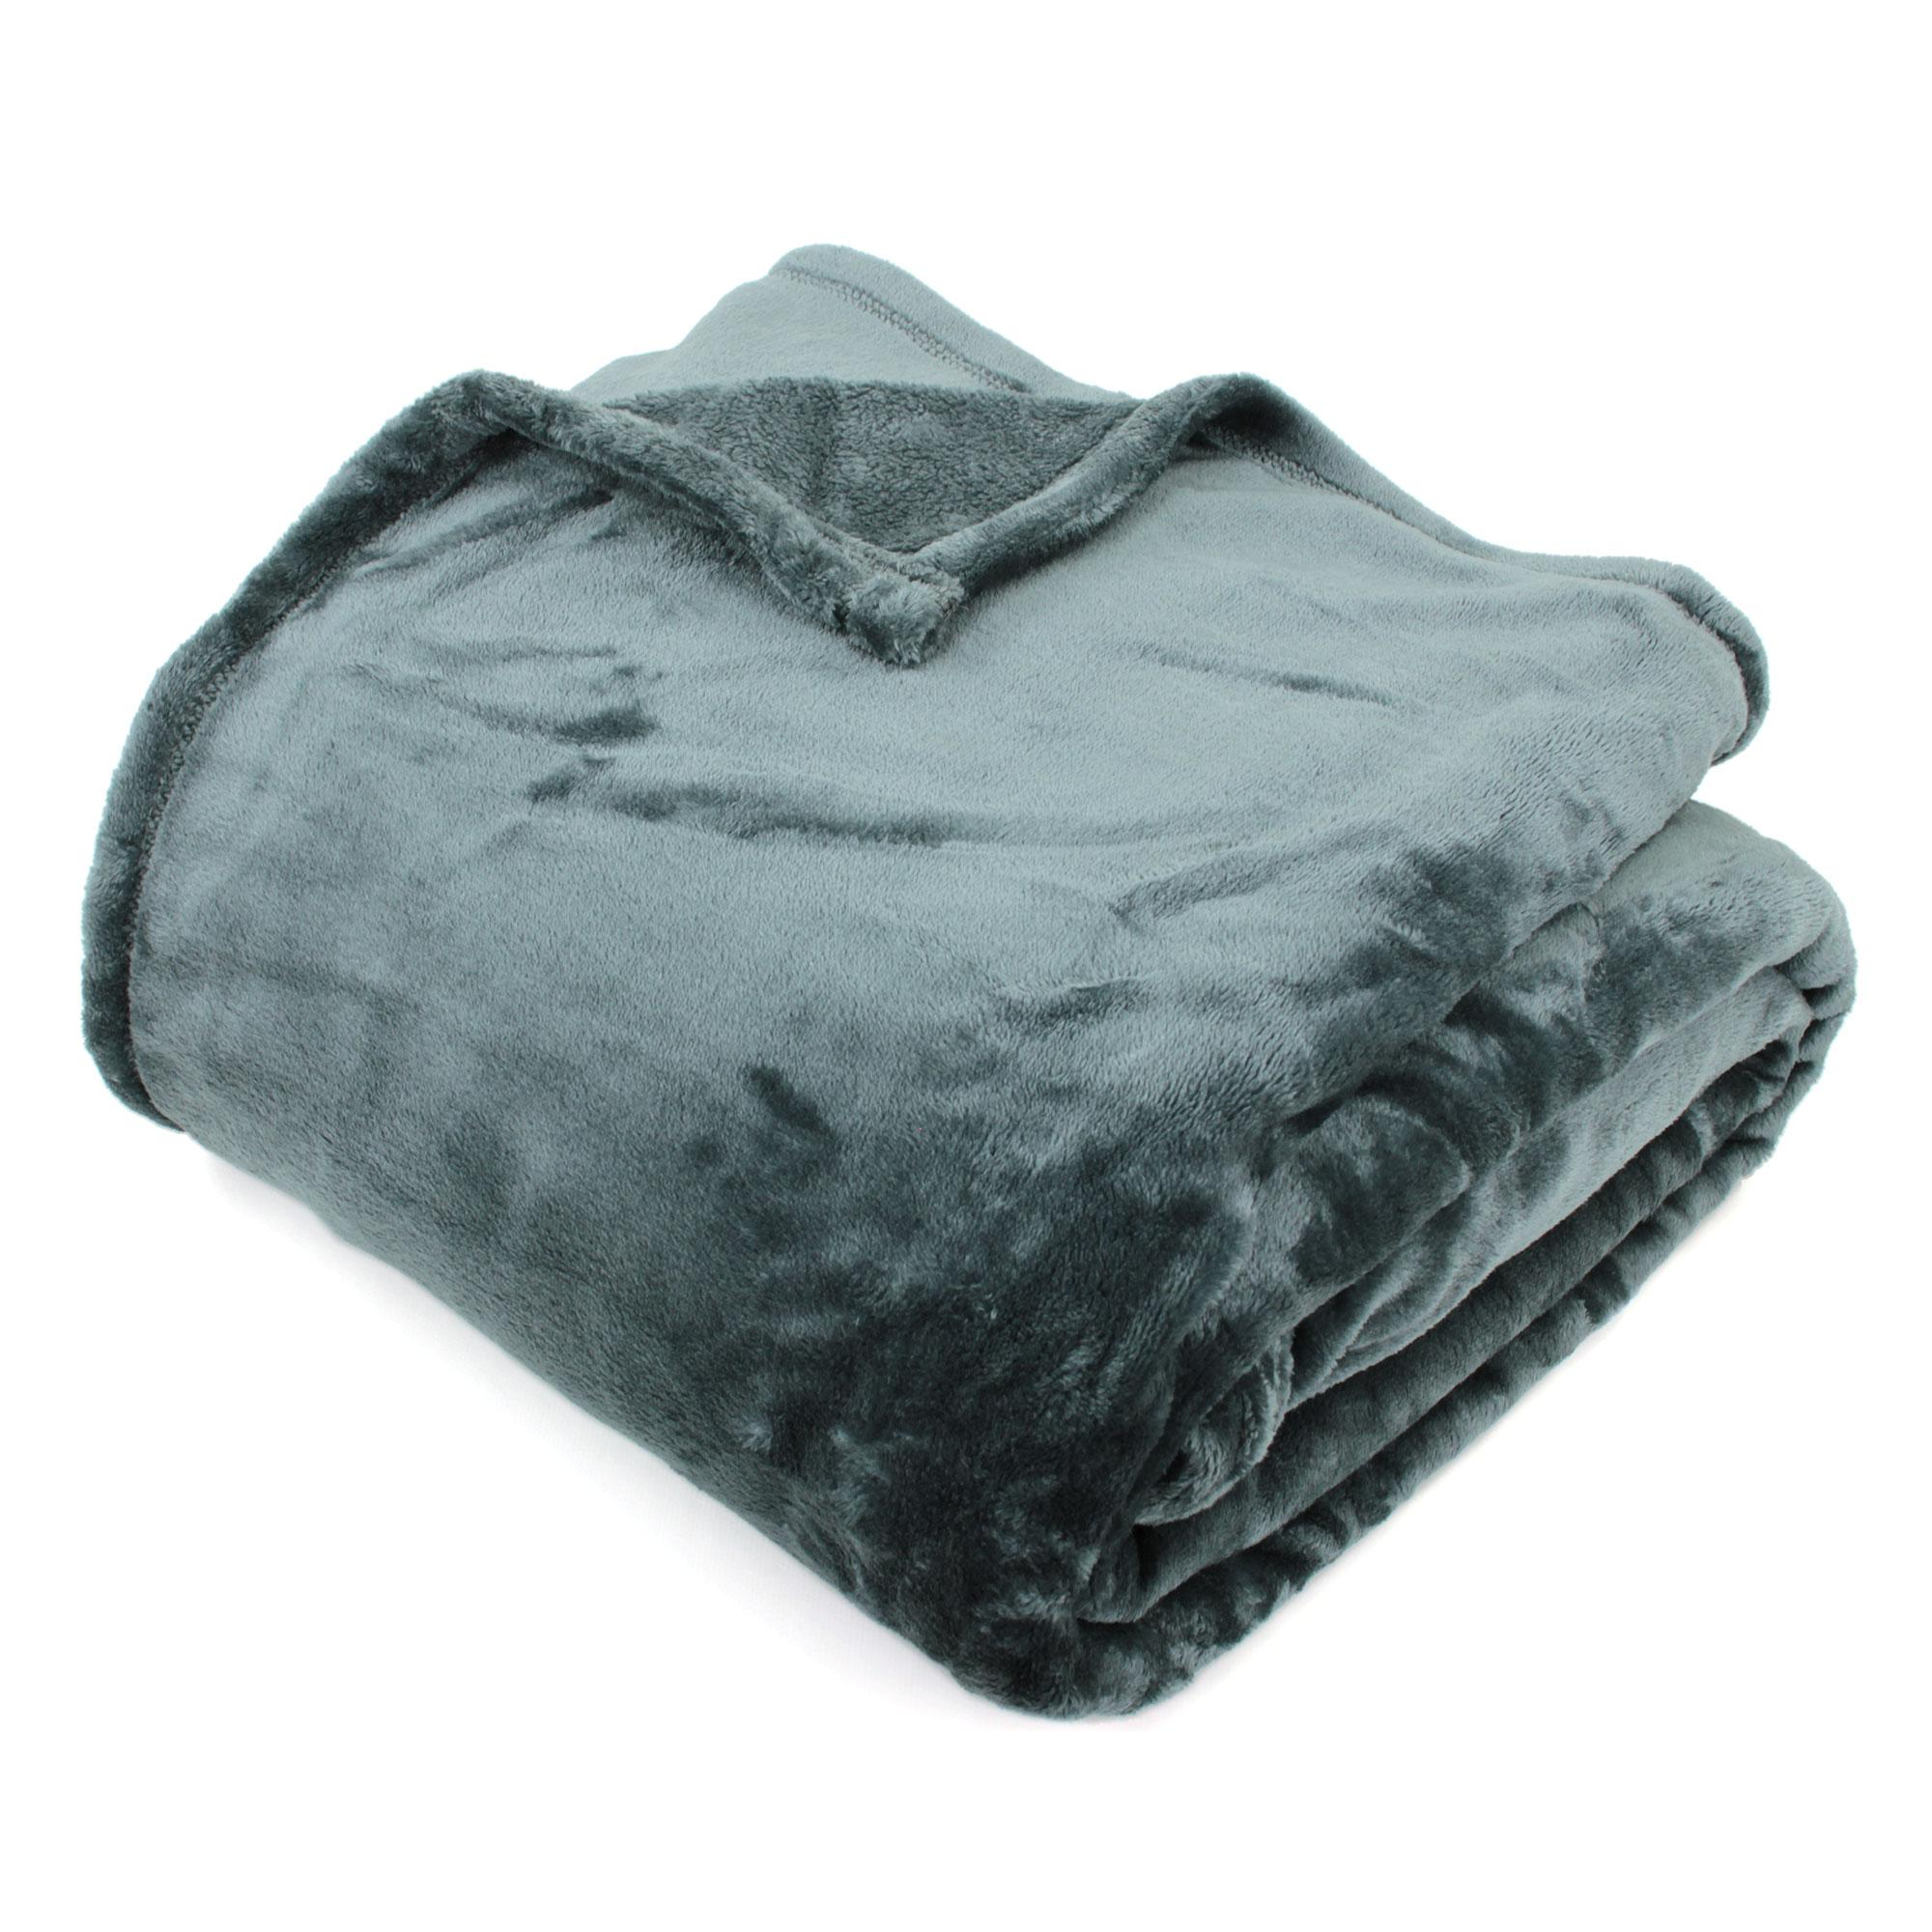 couverture polaire 240x260 microfibre velvet gris acier ebay. Black Bedroom Furniture Sets. Home Design Ideas